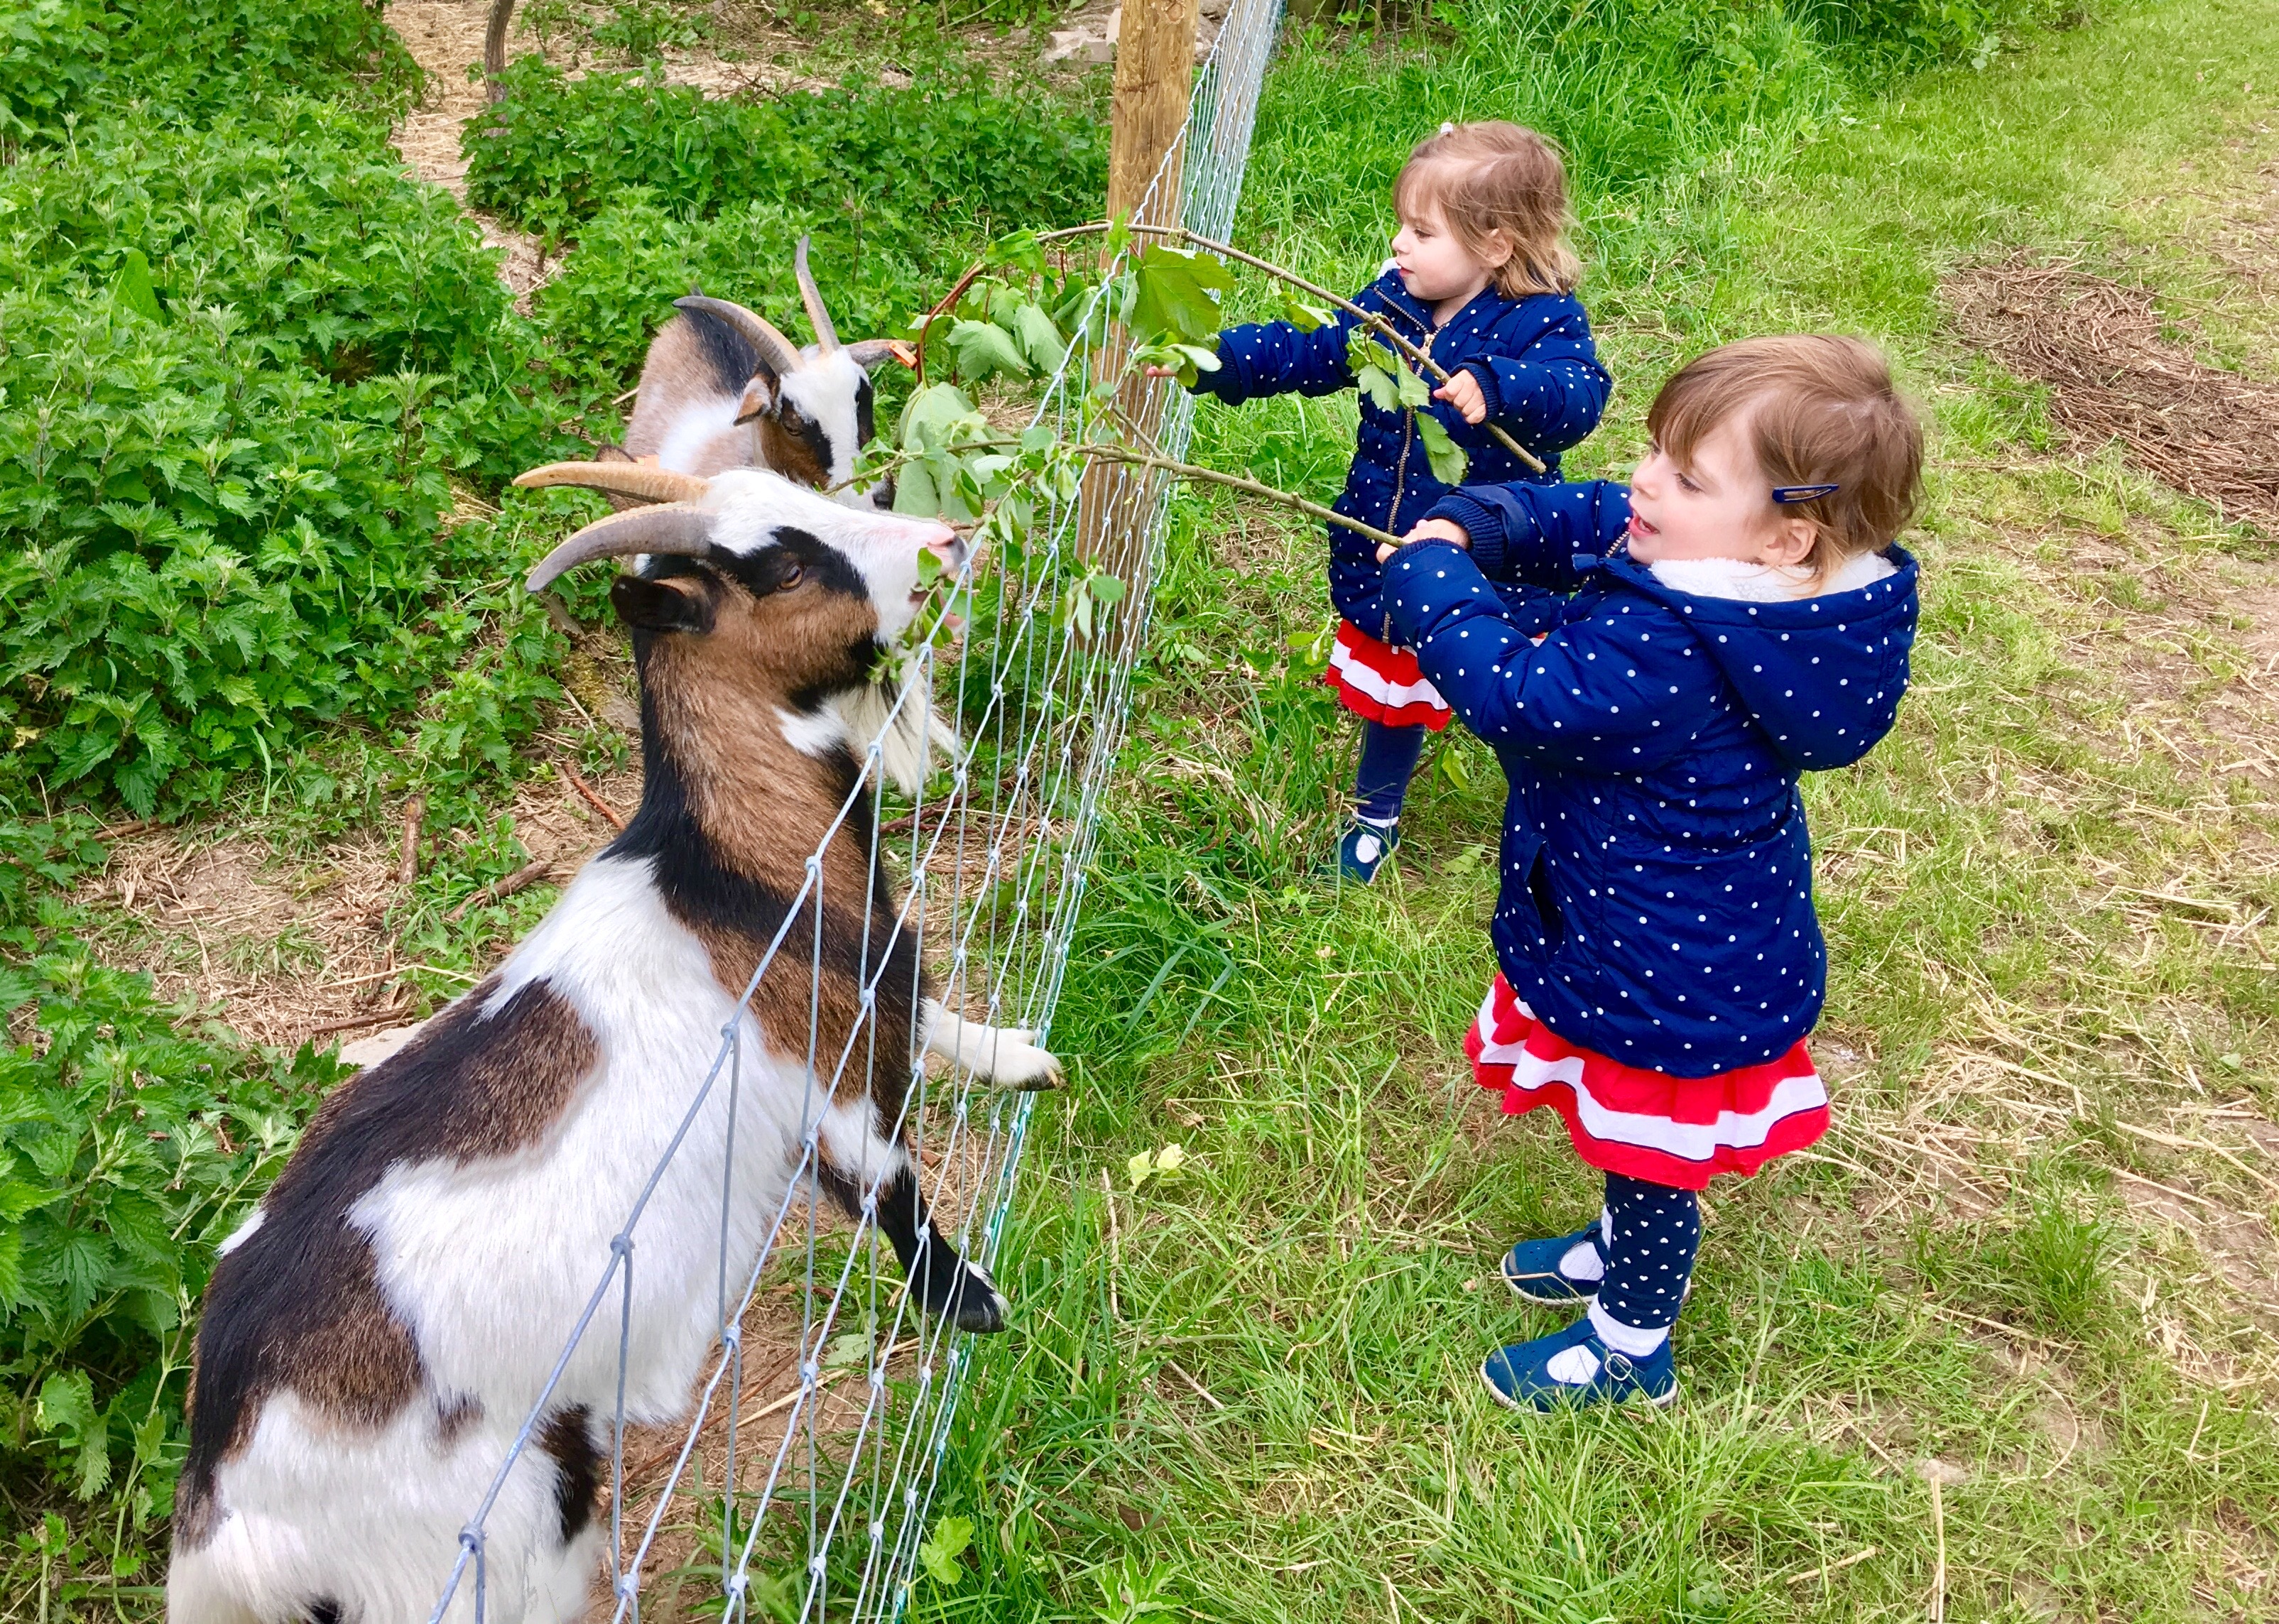 Twins feeding the goats at Kennel farm